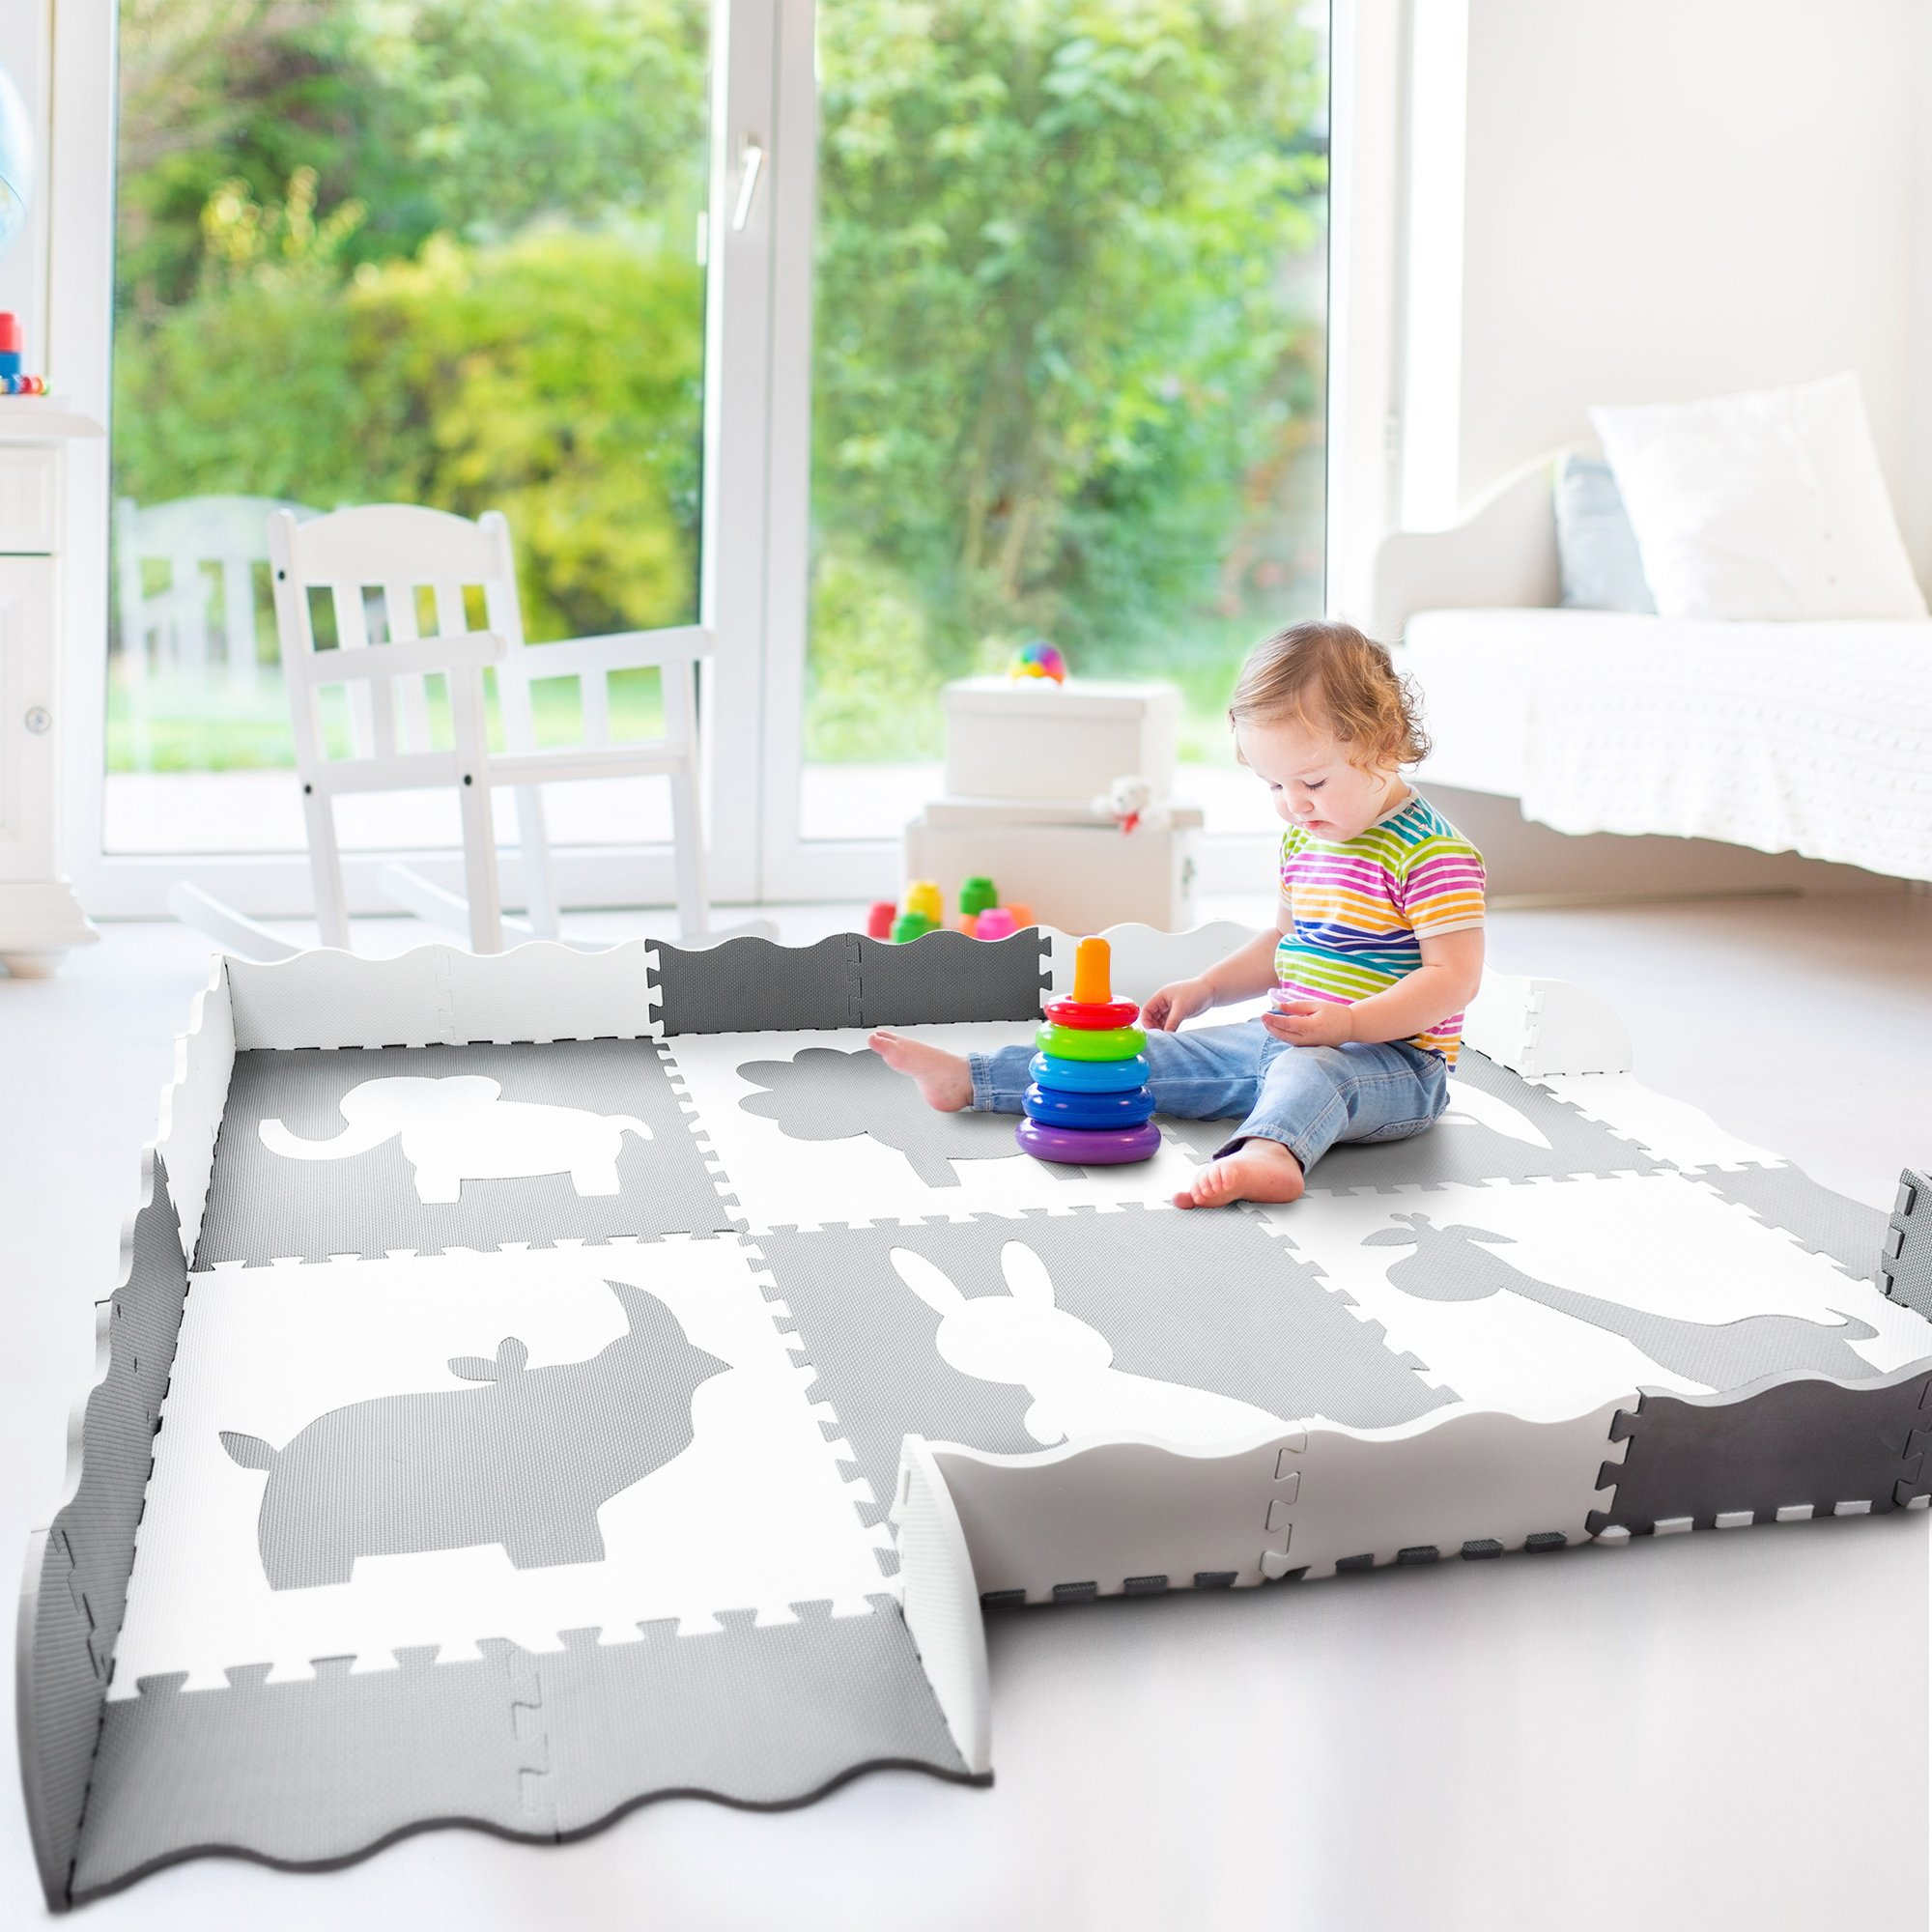 Large (5x7') Baby Play Mat with Interlocking Foam Floor Tiles. Neutral, Non Toxic Baby Playmat for Nursery, Playroom or Living Room (Grey and White) by Wee Giggles (Image #4)